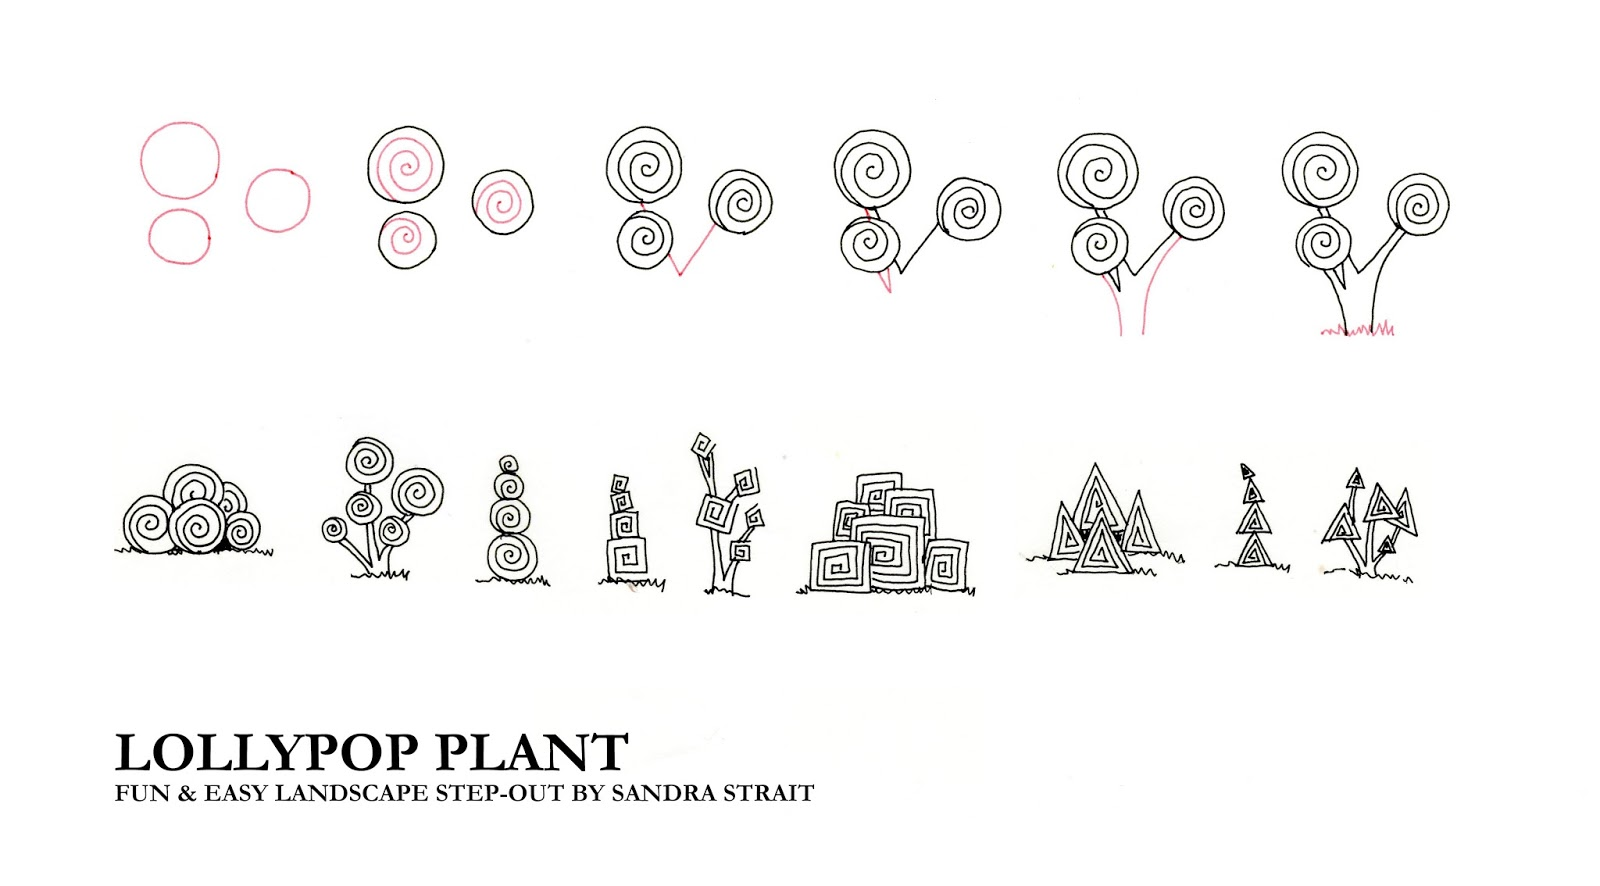 lollipop plant fun easy landscape step out funandeasylandscape step out zensations zebrapenus